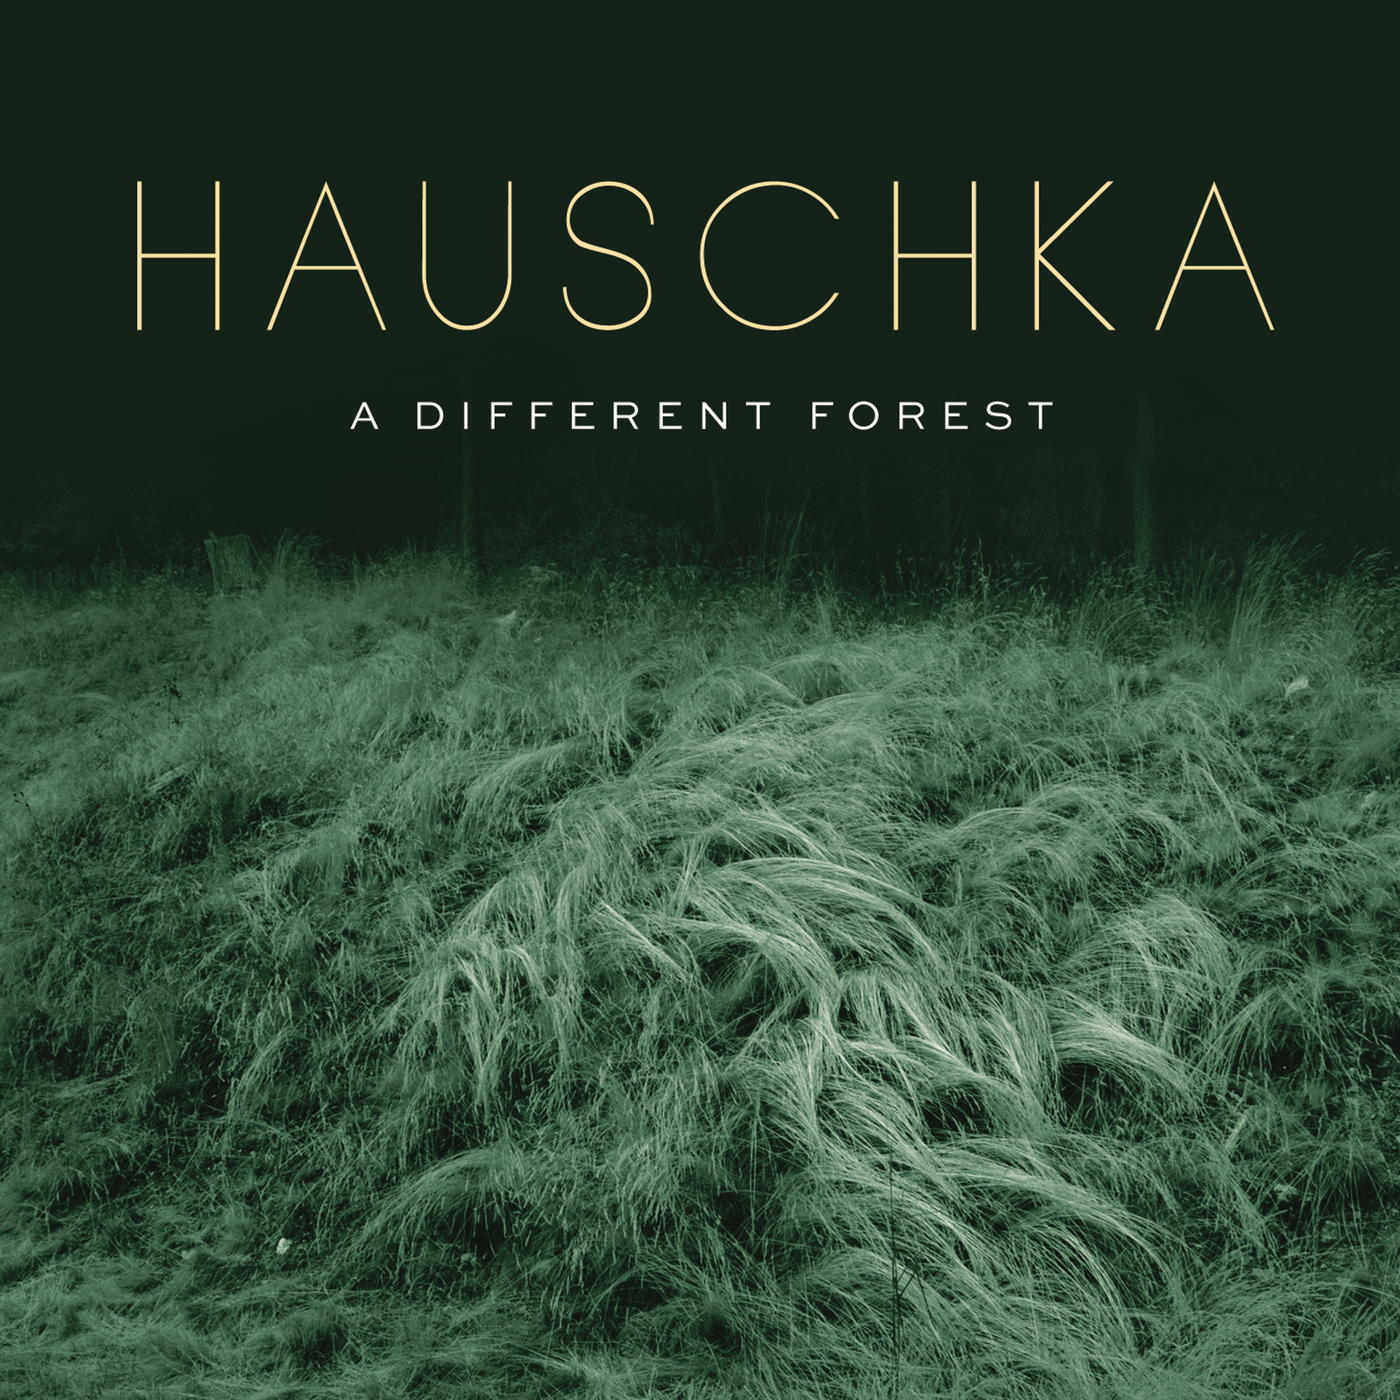 A Different Forest - Hauschka